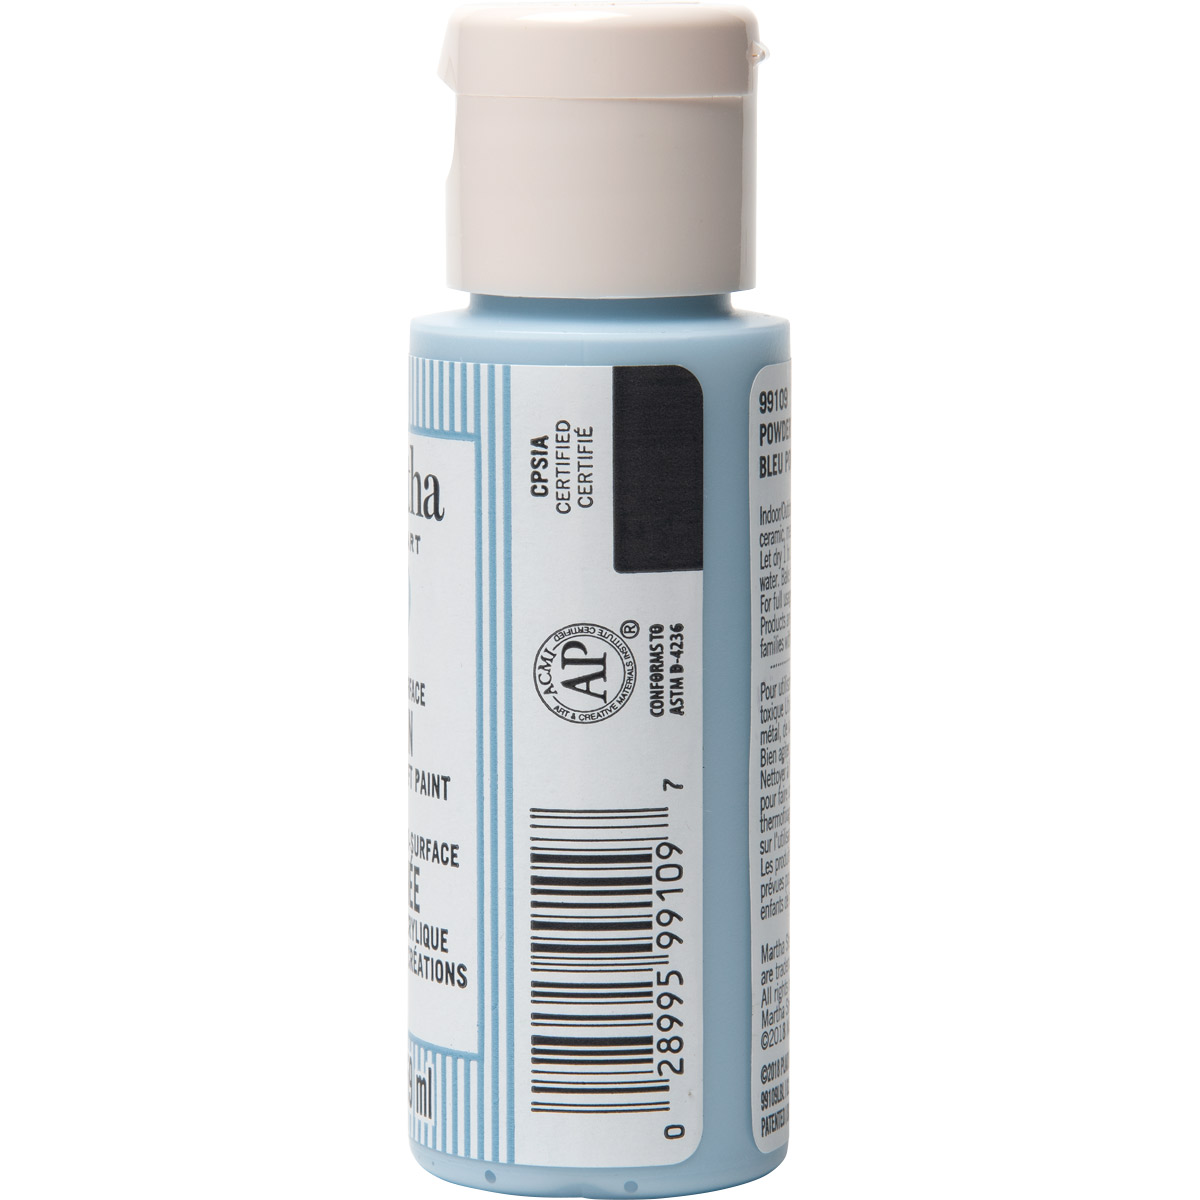 Martha Stewart ® Multi-Surface Satin Acrylic Craft Paint CPSIA - Powder Blue, 2 oz. - 99109